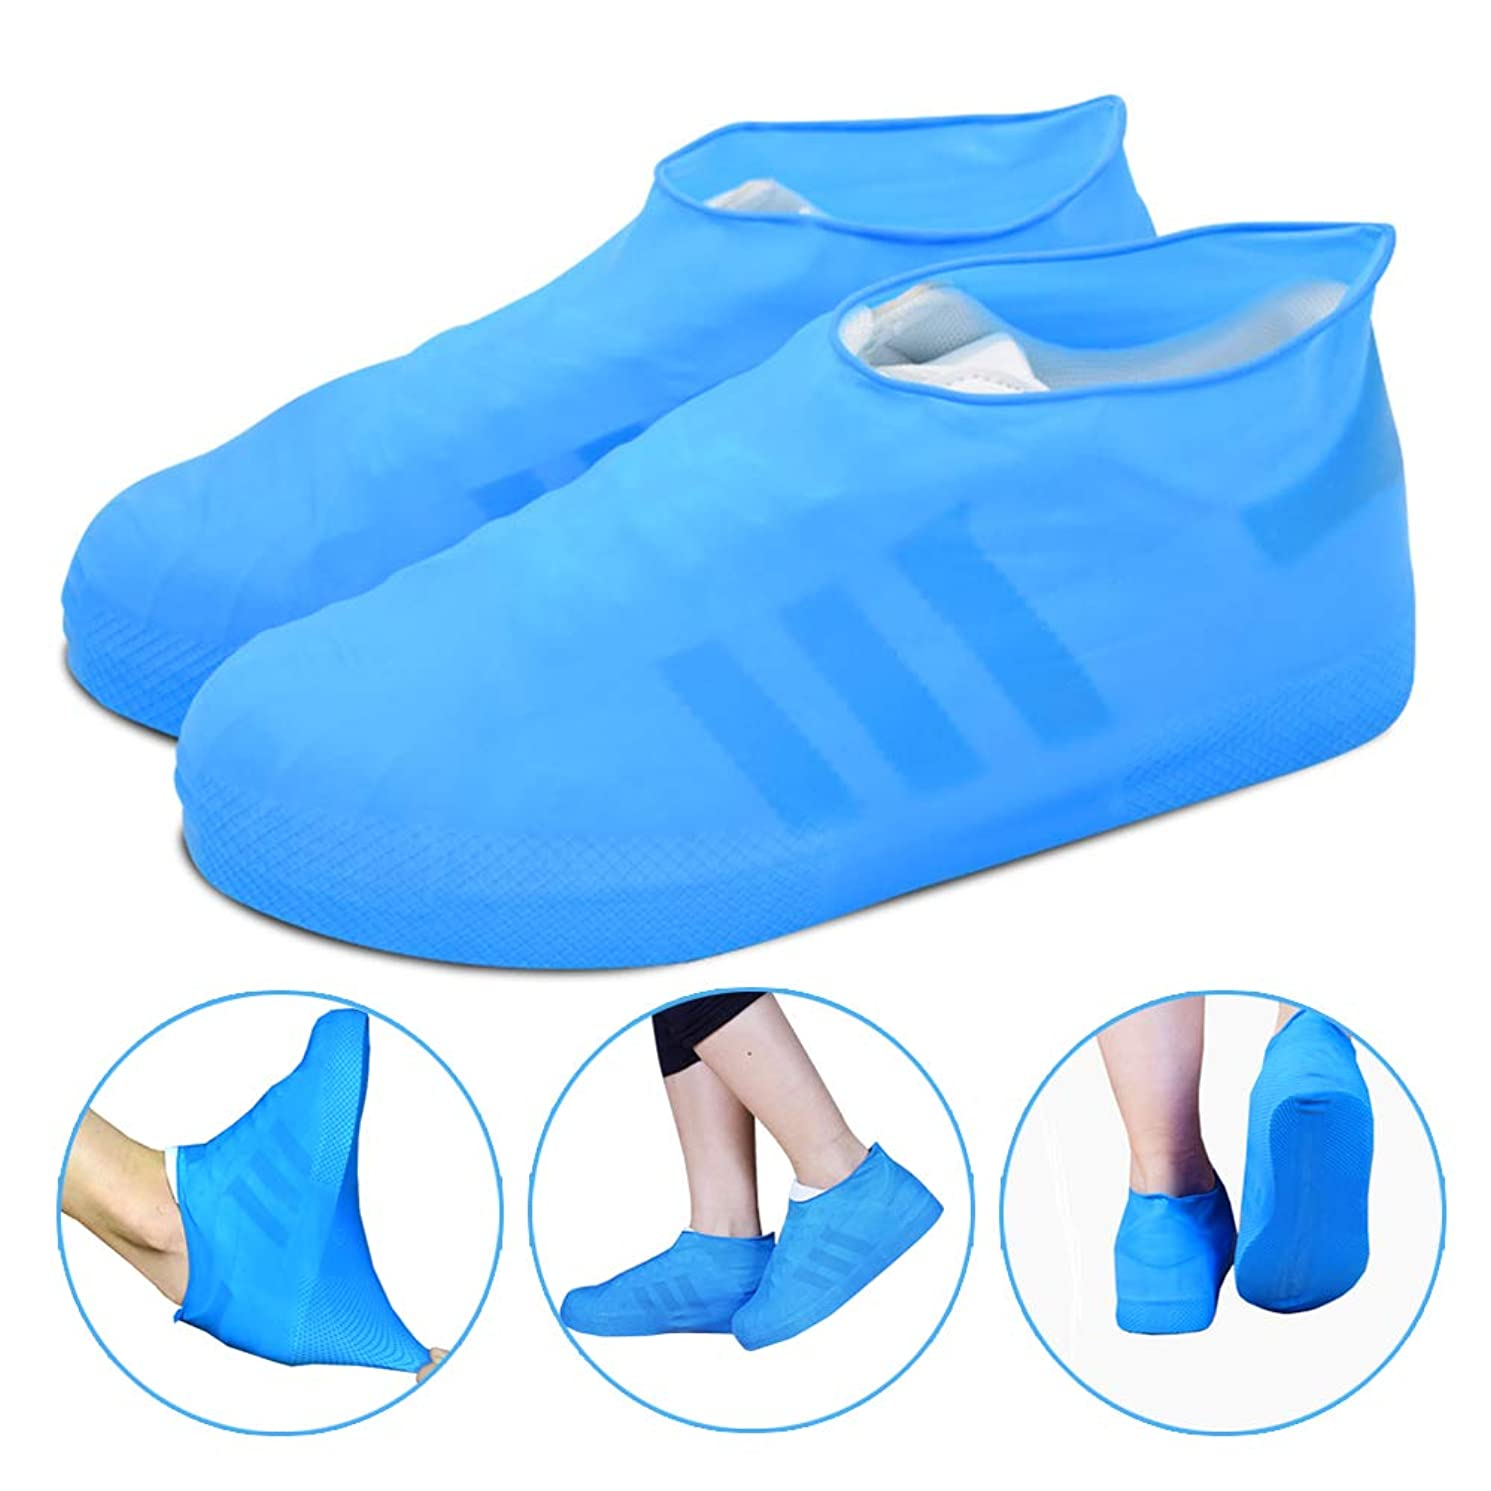 Reusable Rain Snow Boot Shoe Covers, Waterproof Rain Socks, Silicone Rubber Shoes For Men Women Kids, Durable Slip-Resistant Protectors Overshoes For Indoor and Outdoor (blue) (Medium)